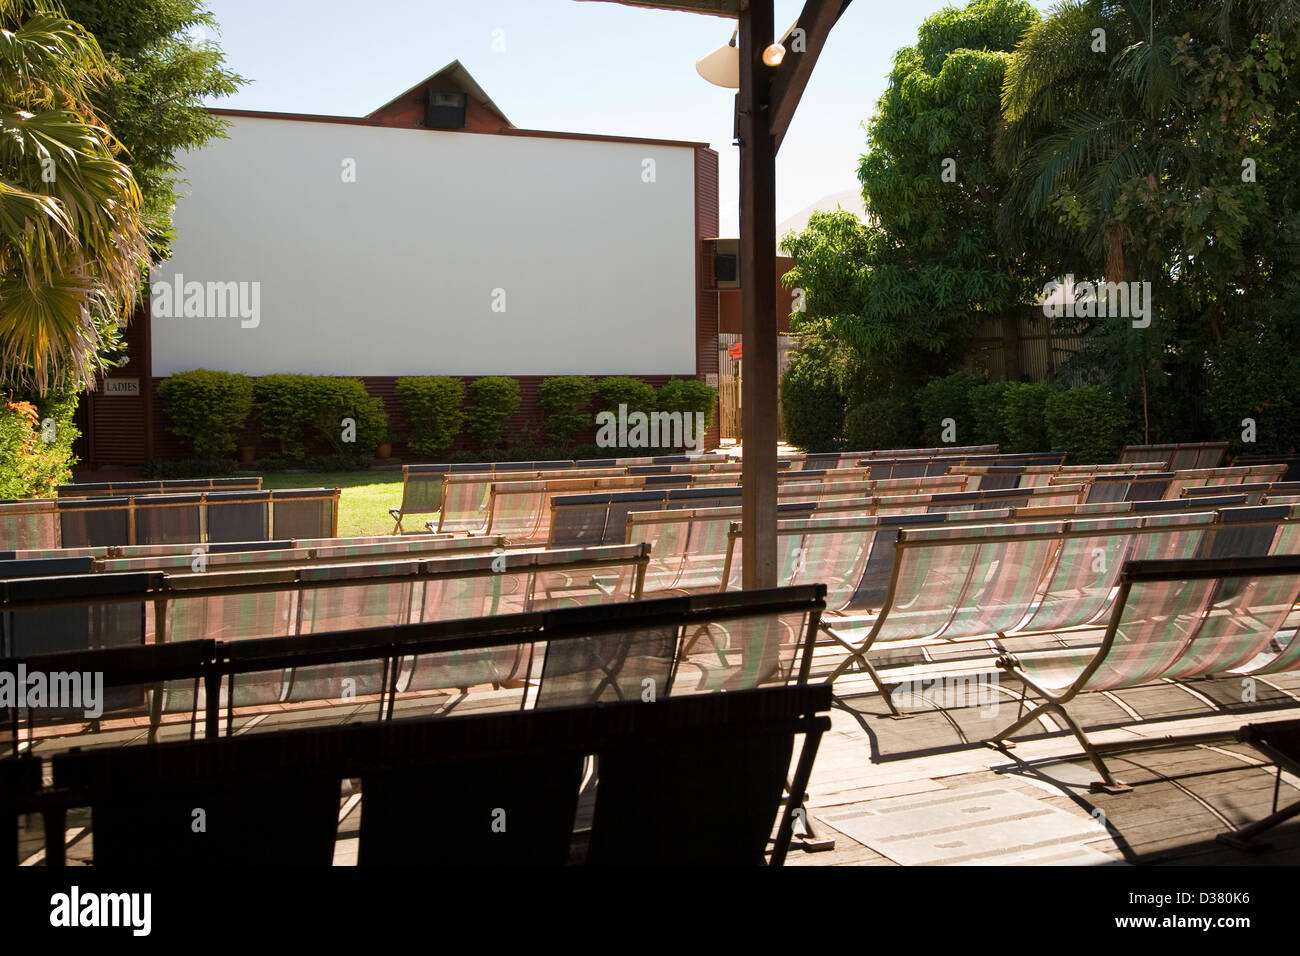 Seating and screen at Sun Picture Gardens outdoor movie theatre, Broome, Western Australia - Stock Image